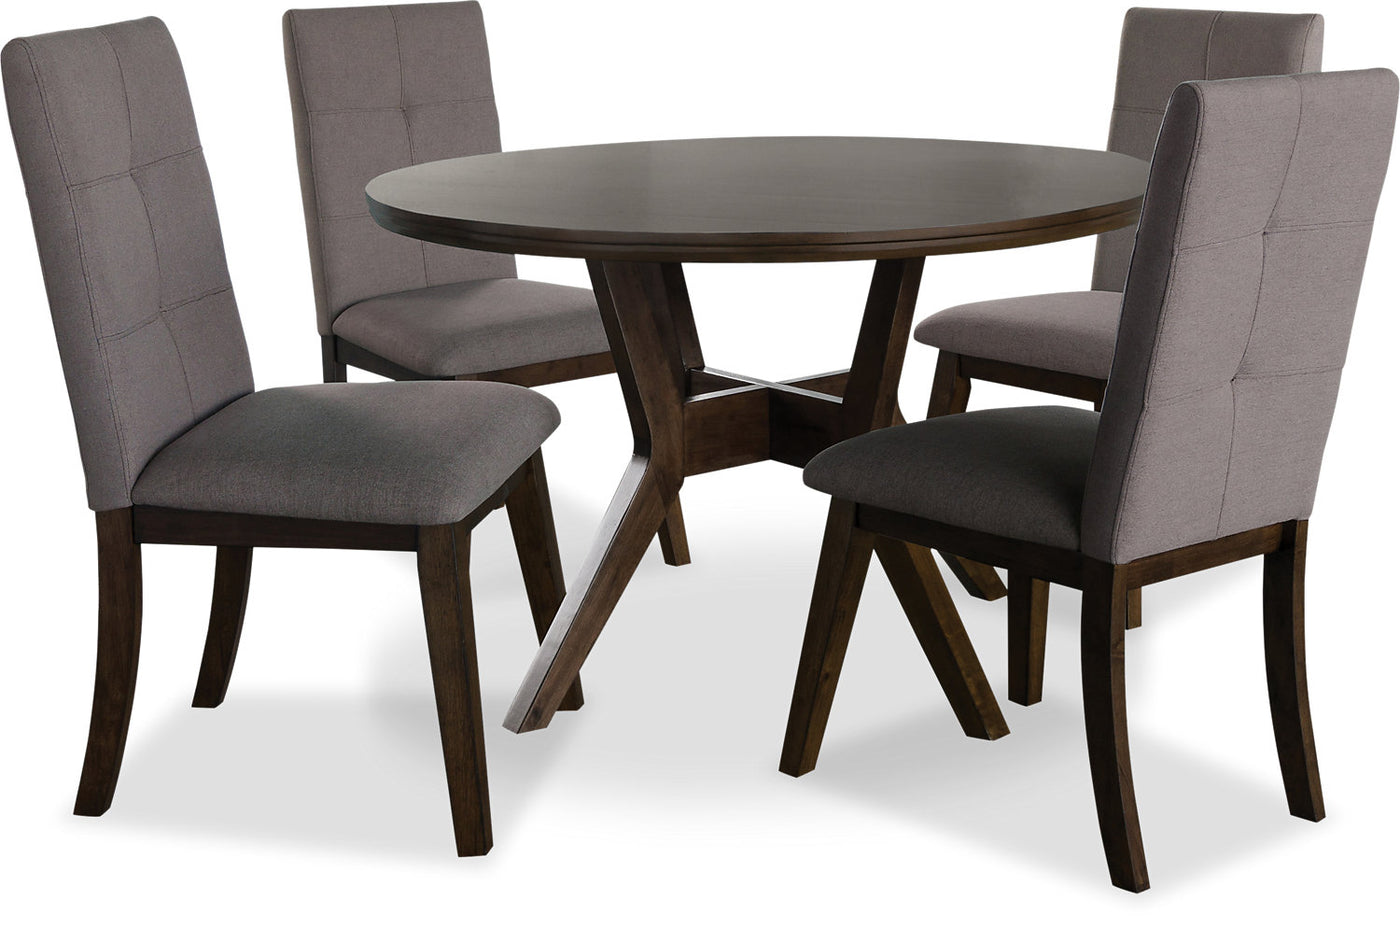 Chelsea 9 Piece Round Dining Table Package with Brown Chairs